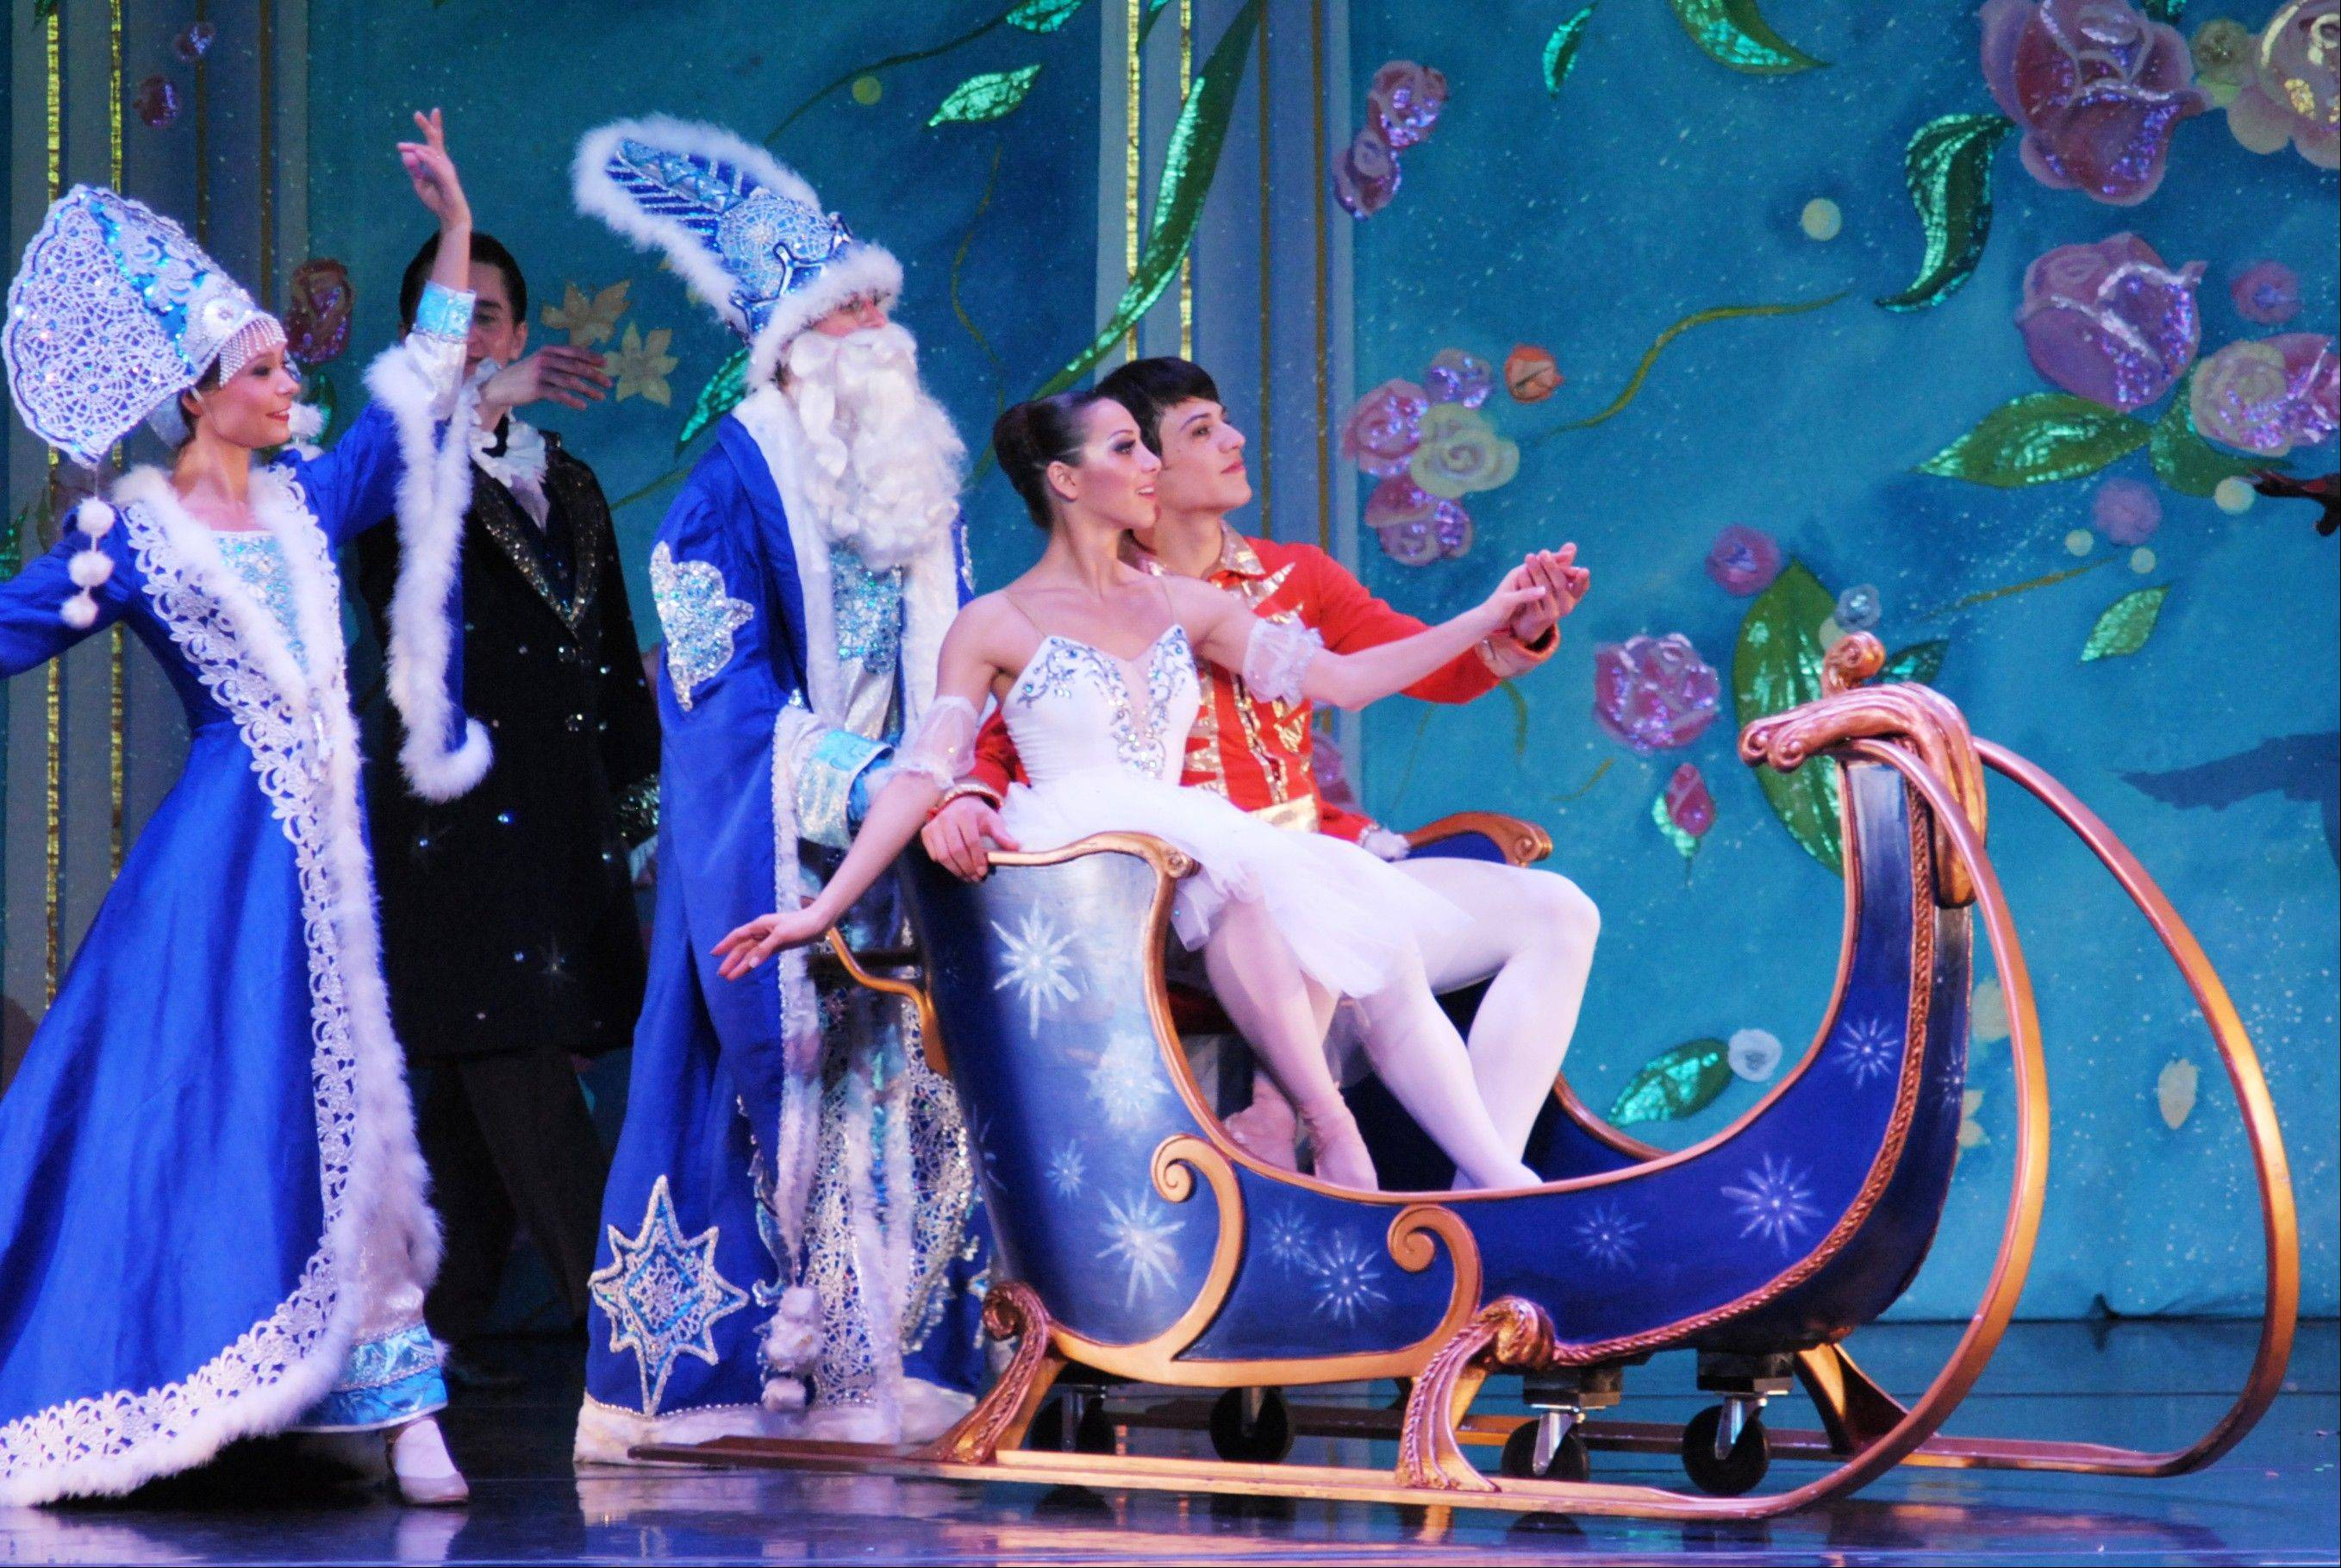 "Masha (Karyna Shatkovskaya) and the Nutcracker Prince (Vladimir Tkachenko) ride in a sleigh in a previous edition of Moscow Ballet's touring ""Great Russian Nutcracker."" The production returns on Sunday, Dec. 8, to the Rosemont Theatre."